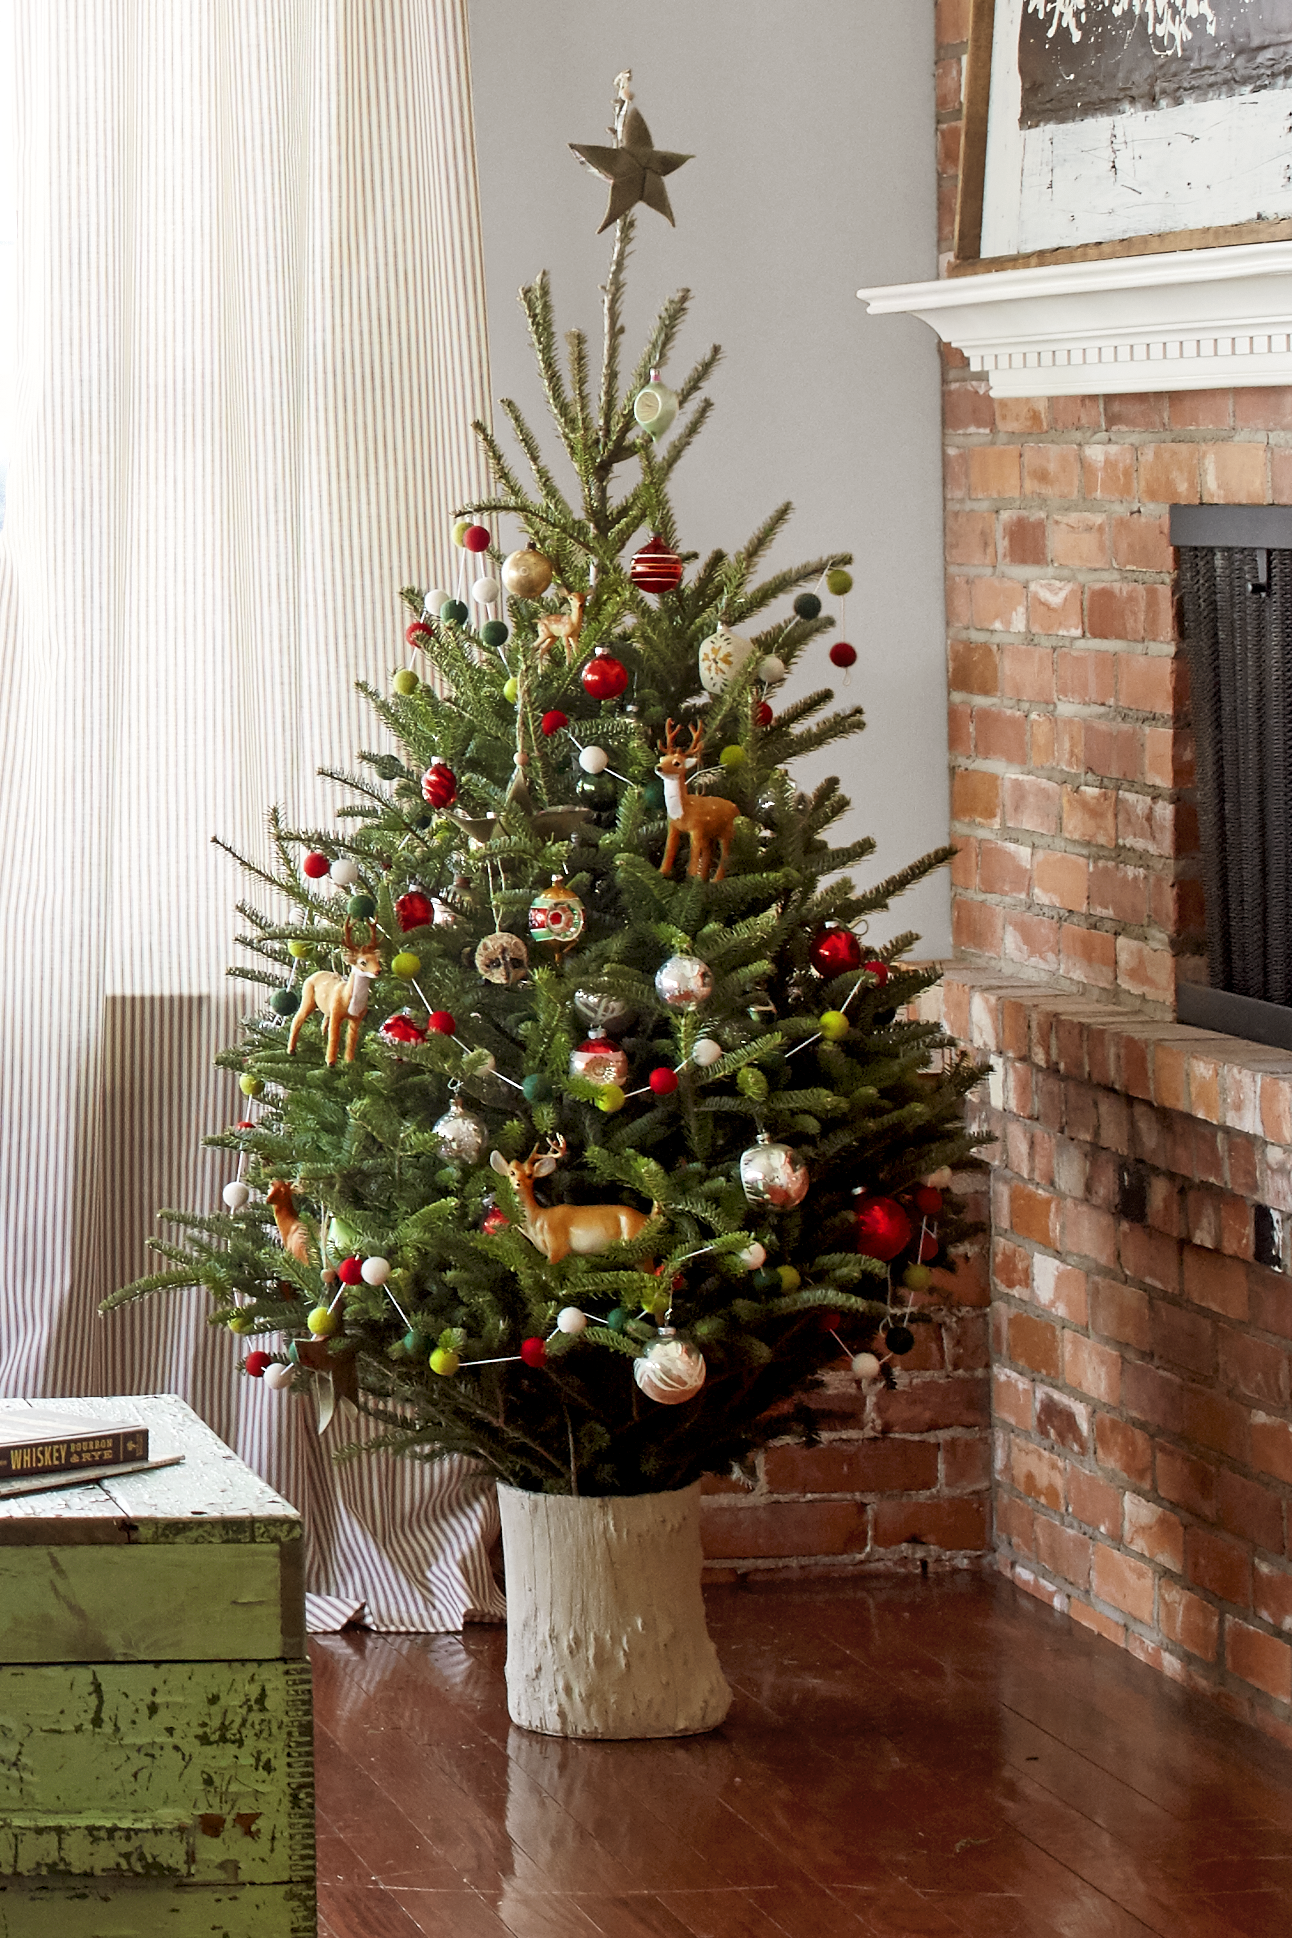 30+ Best Small Christmas Trees - Ideas for Decorating Mini Christmas ...